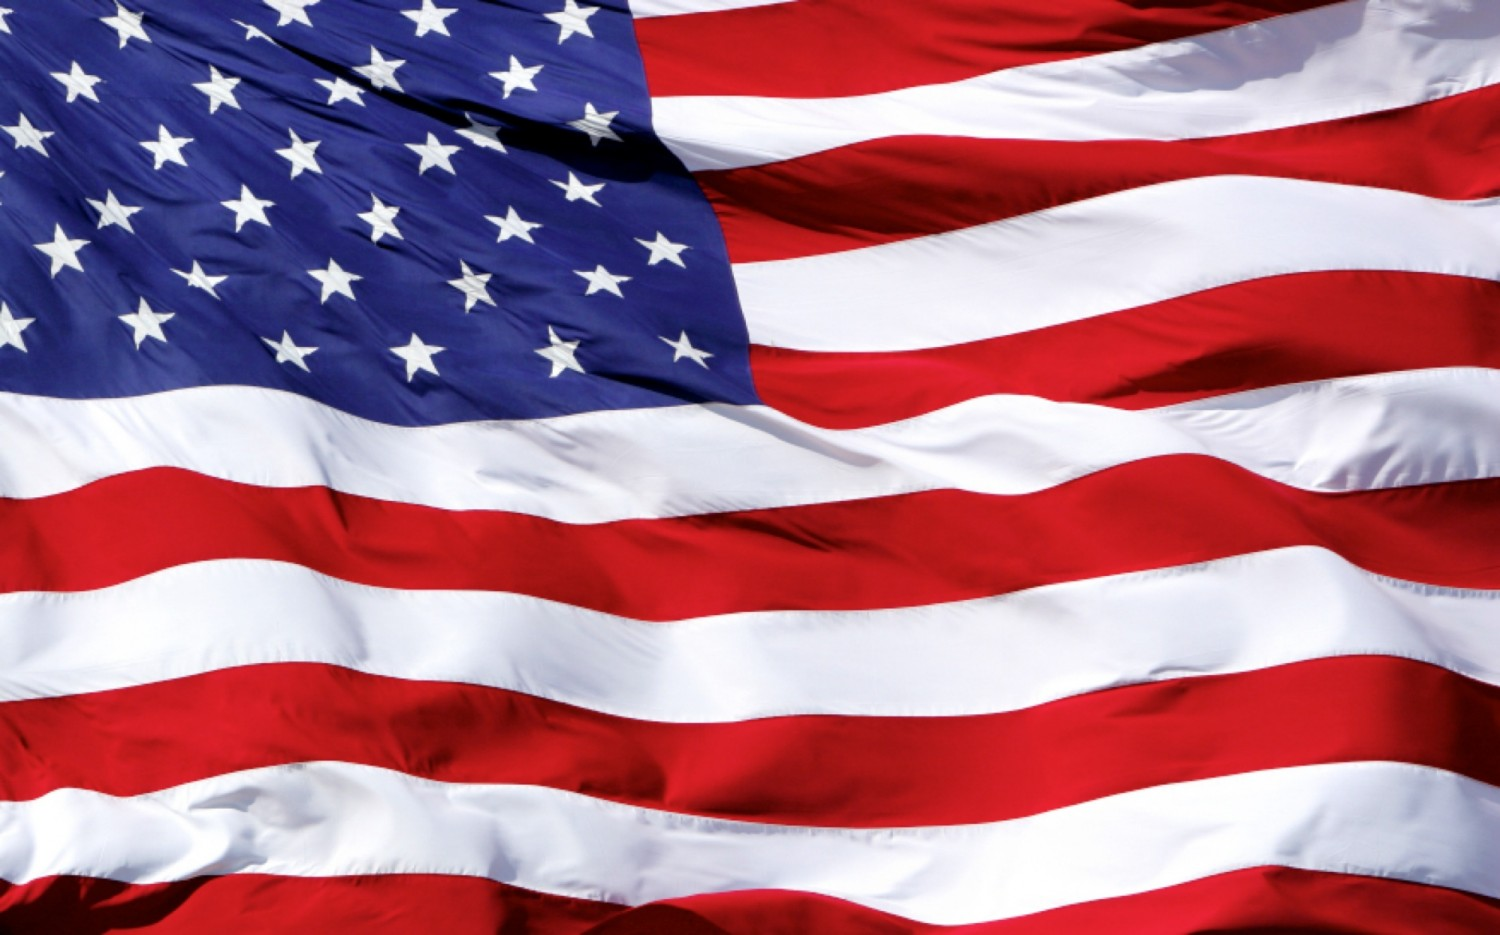 Waving_American_Flag_1_